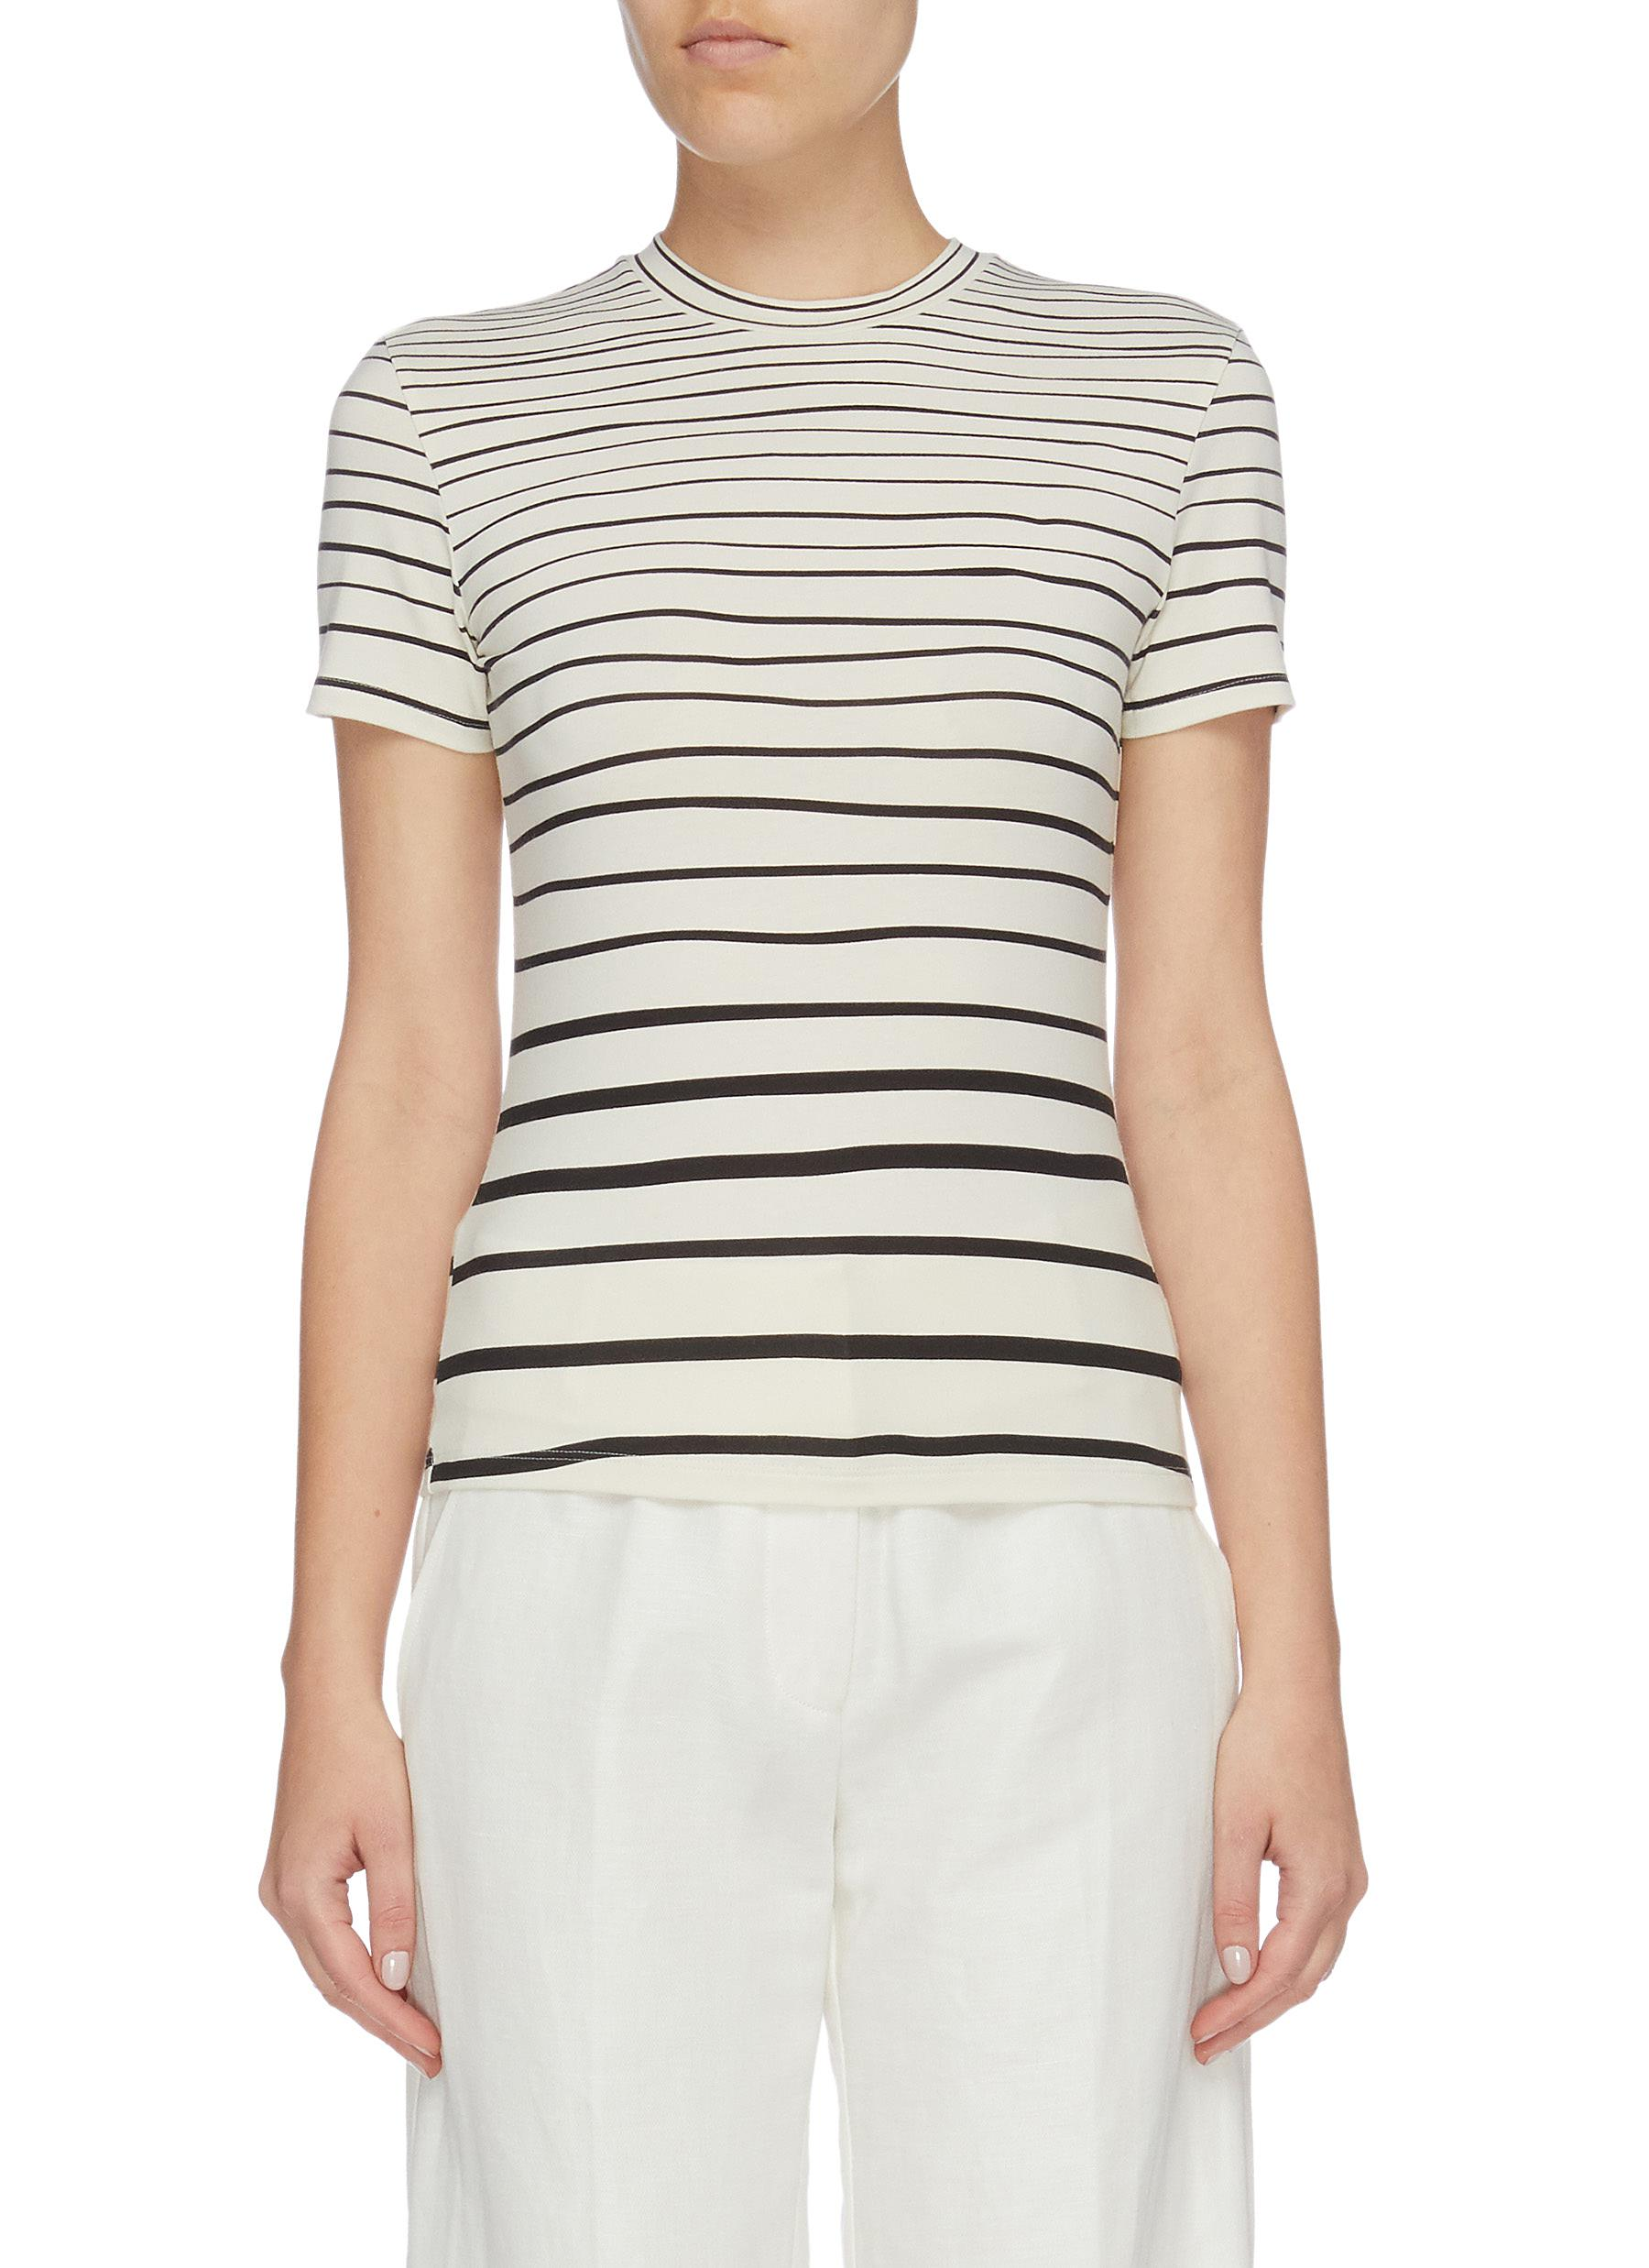 Tiny variegated stripe T-shirt by Theory